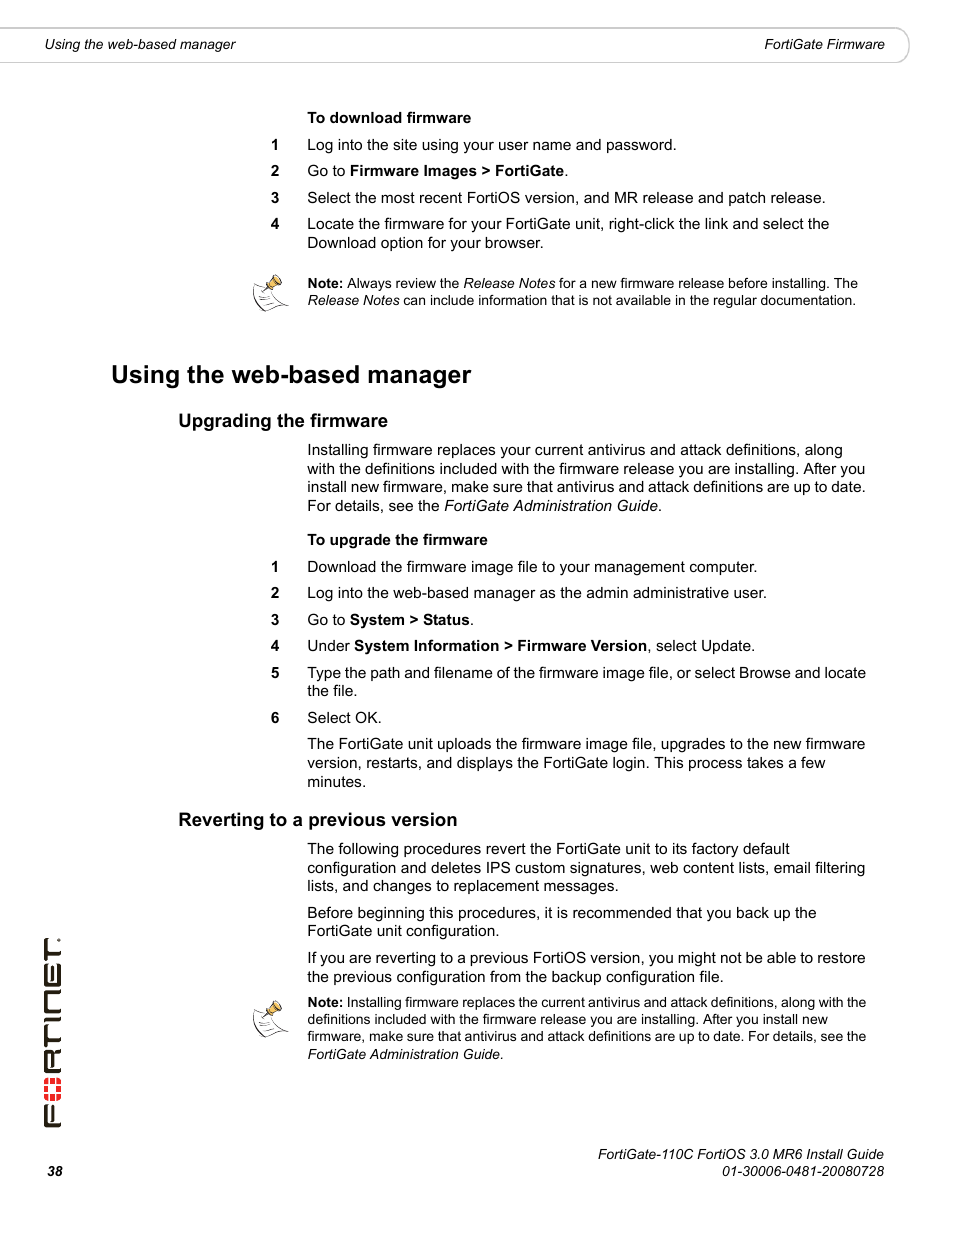 Using the web-based manager, Upgrading the firmware, Reverting to a